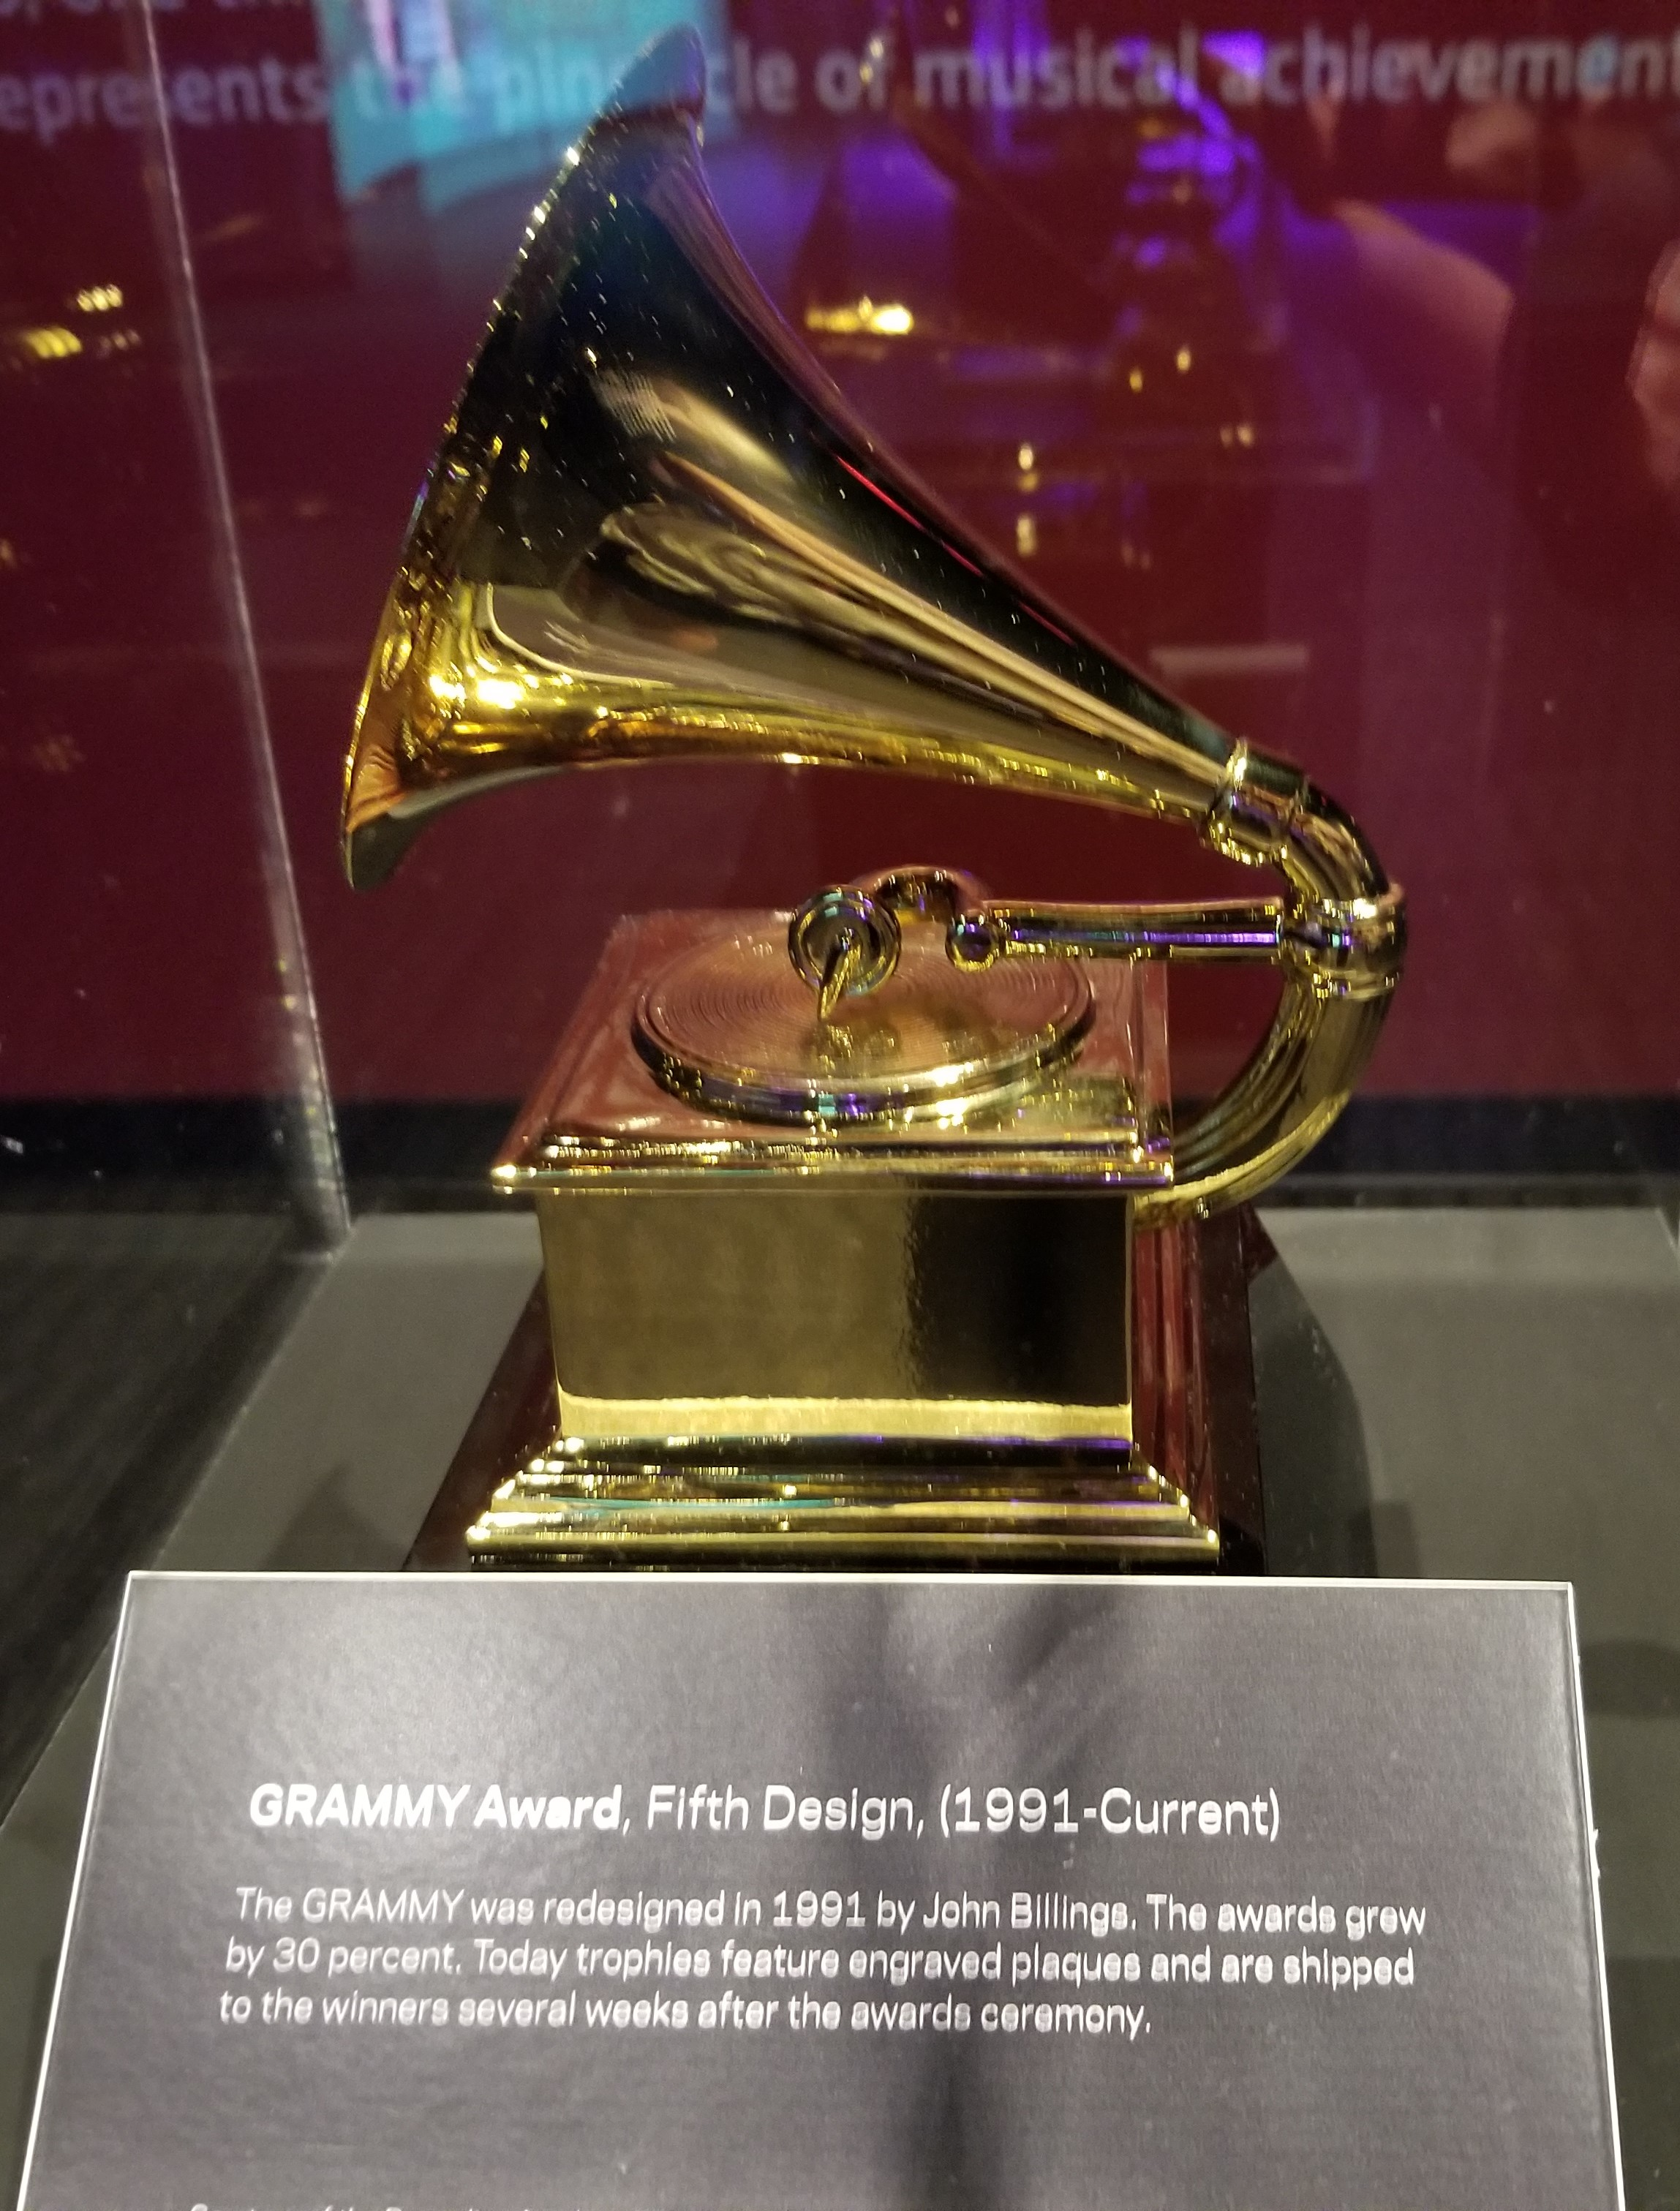 This is the fifth and current GRAMMY Award design (1991 - Current)